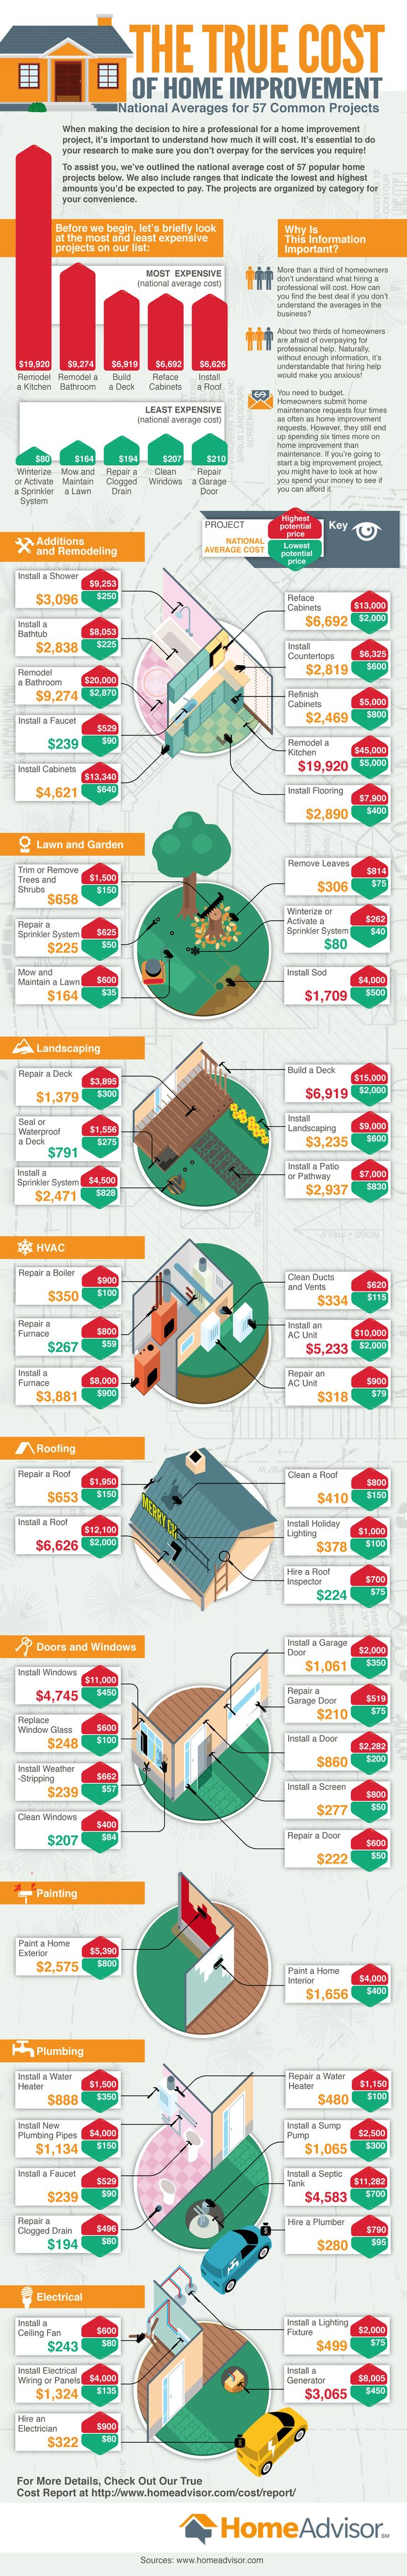 True Cost of Common Home Improvement Projects Infographic #homedesign #homedecor #interiordesign